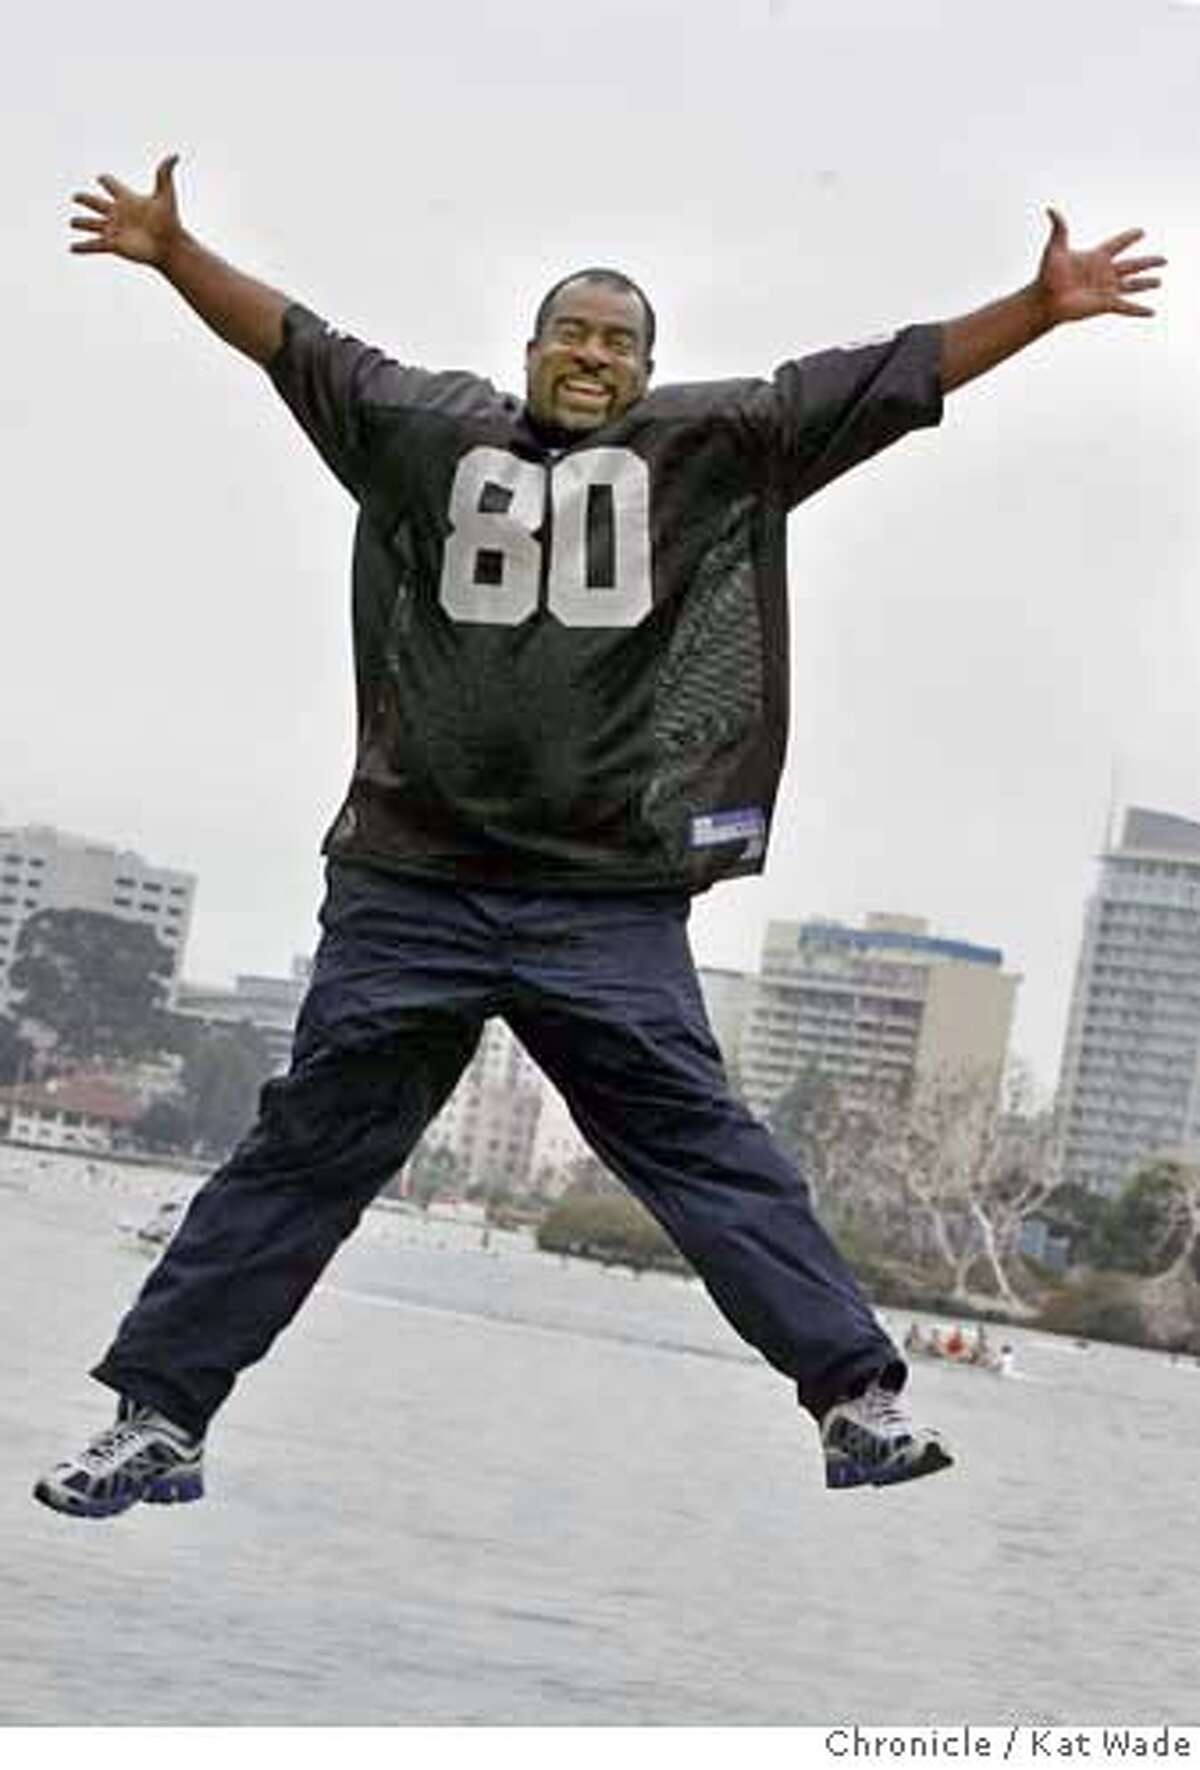 .jpg On Sunday August 20, 2006 Orlando Harding, author and creator of Pariah, the first major comic book set in Oakland poses by Lake Merrit in Oakland where his hero, Pariah, a fallen angel, emerges to fight evil in the East Bay. Kat Wade/The Chronicle **(Subject) cq Mandatory Credit for San Francisco Chronicle and photographer, Kat Wade, Mags out